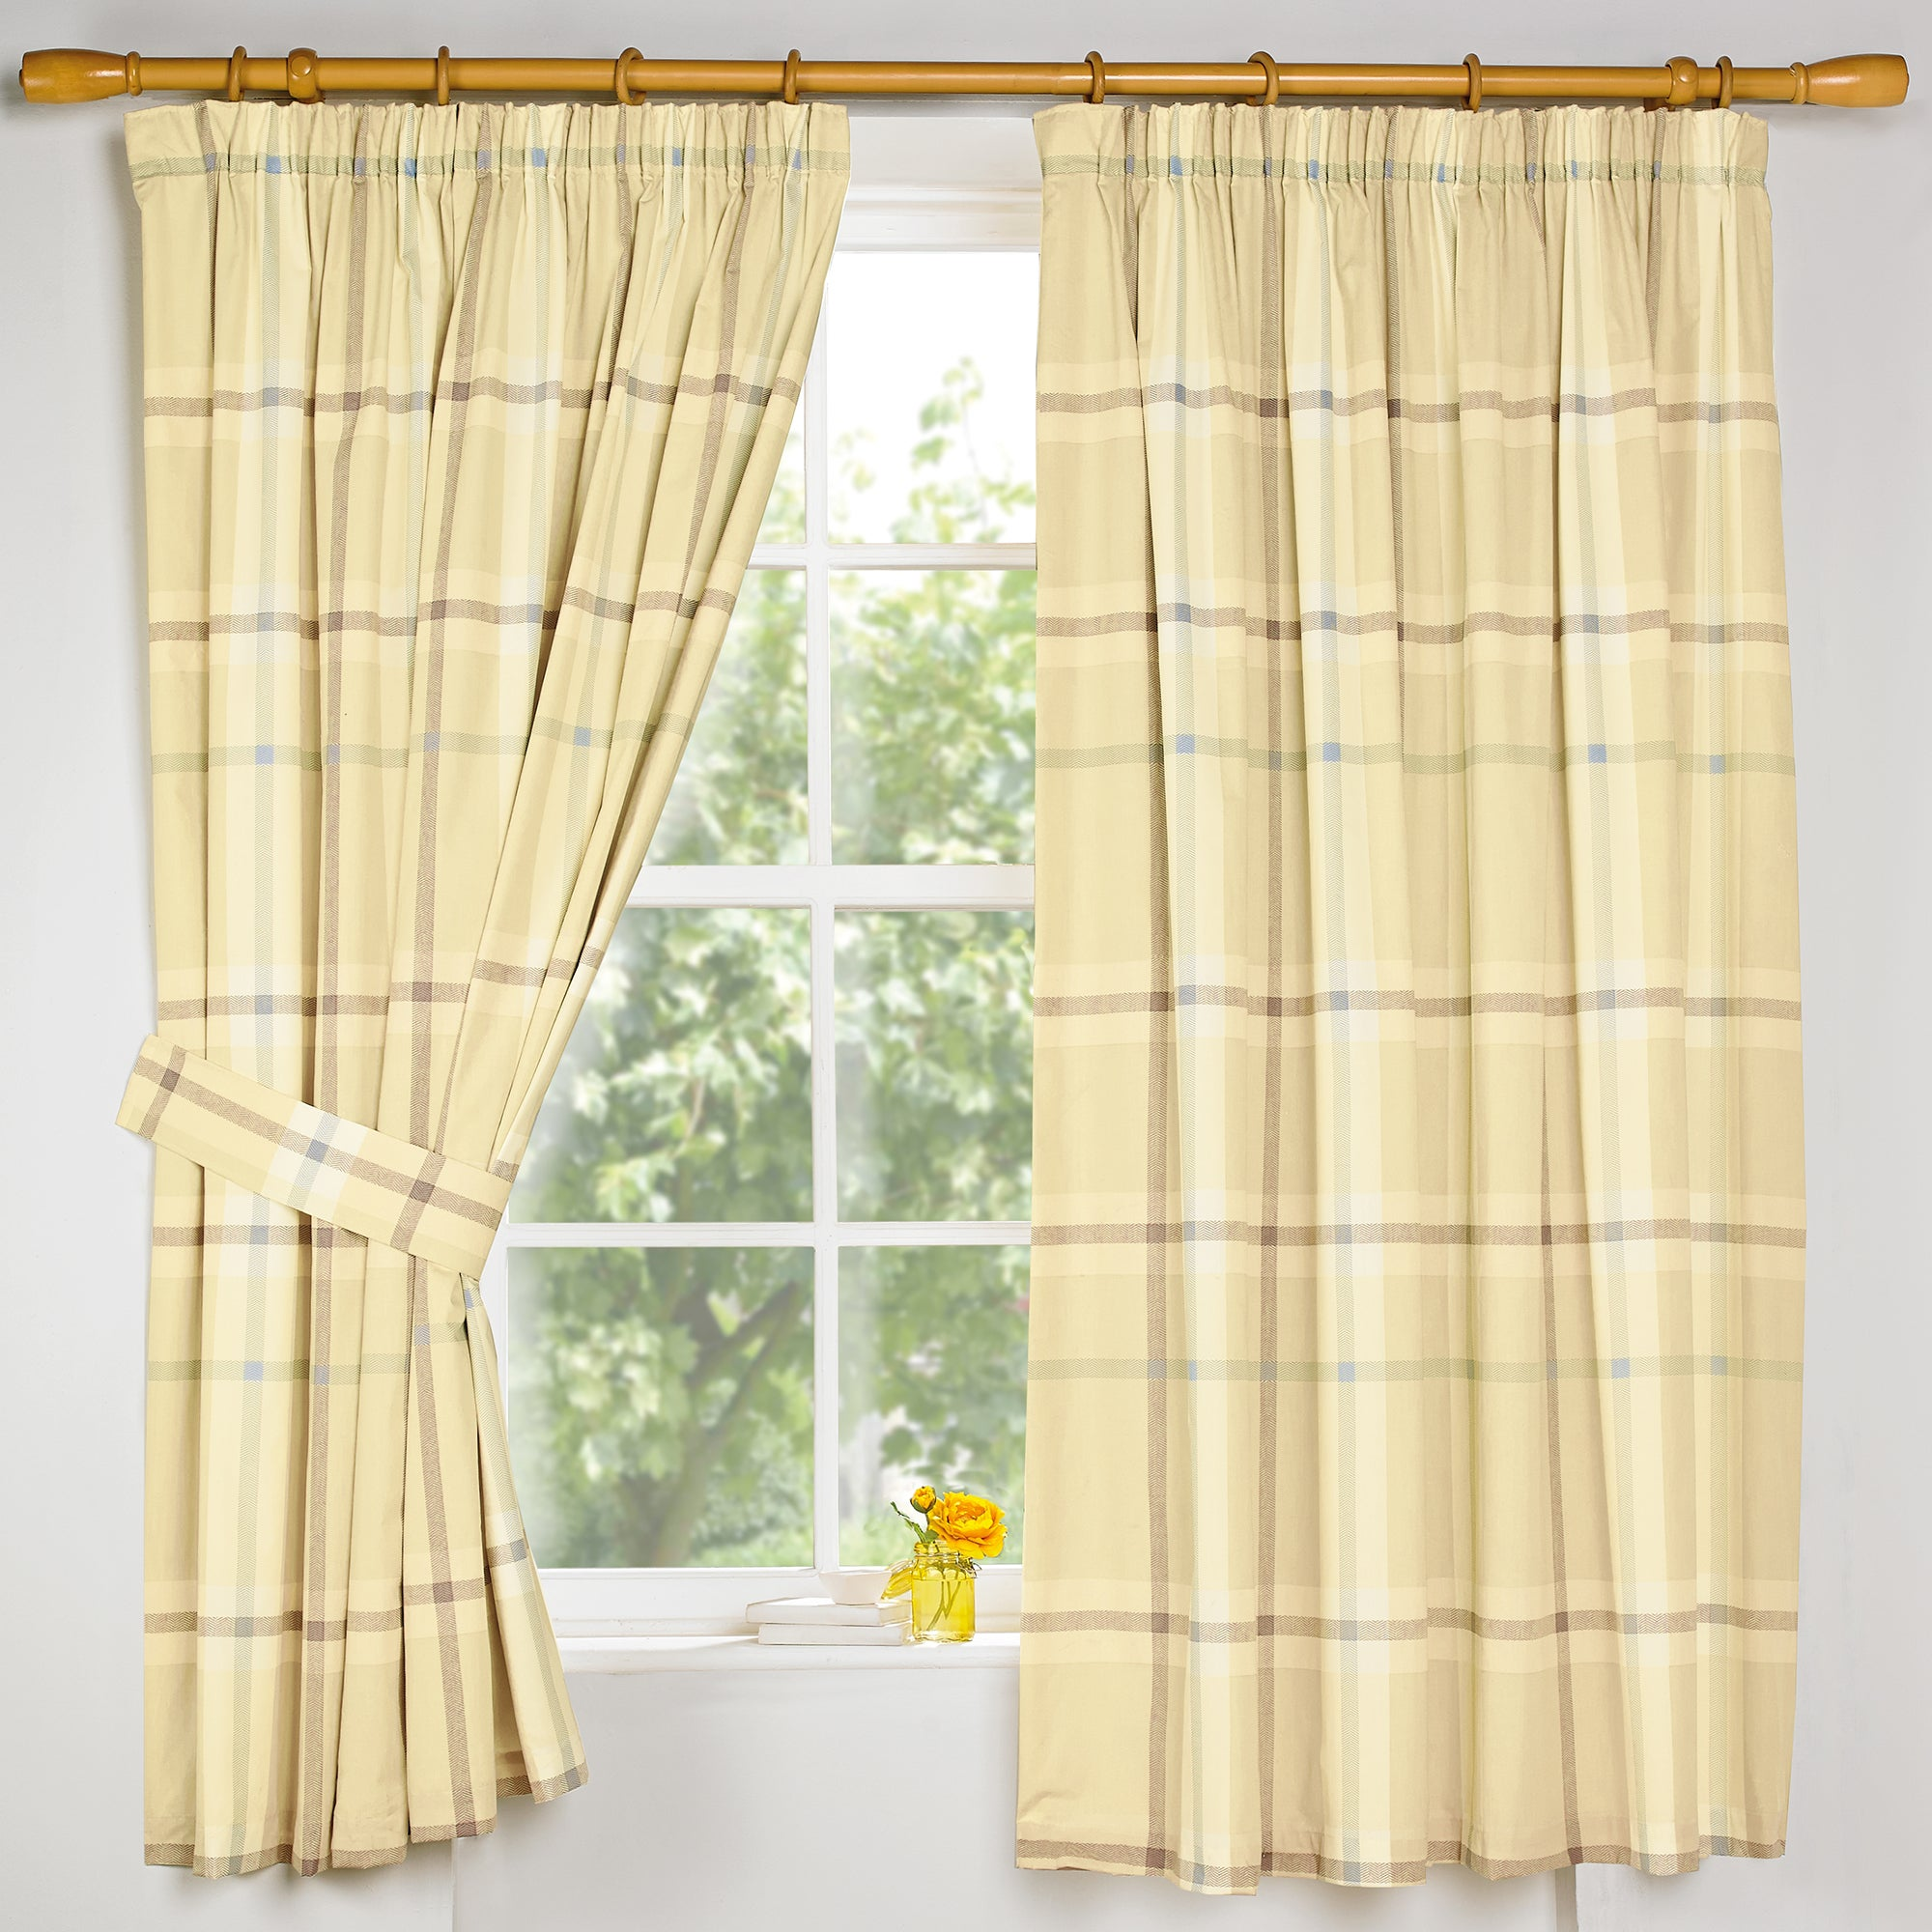 Lemon Colonial Check Thermal Pencil Pleat Curtains